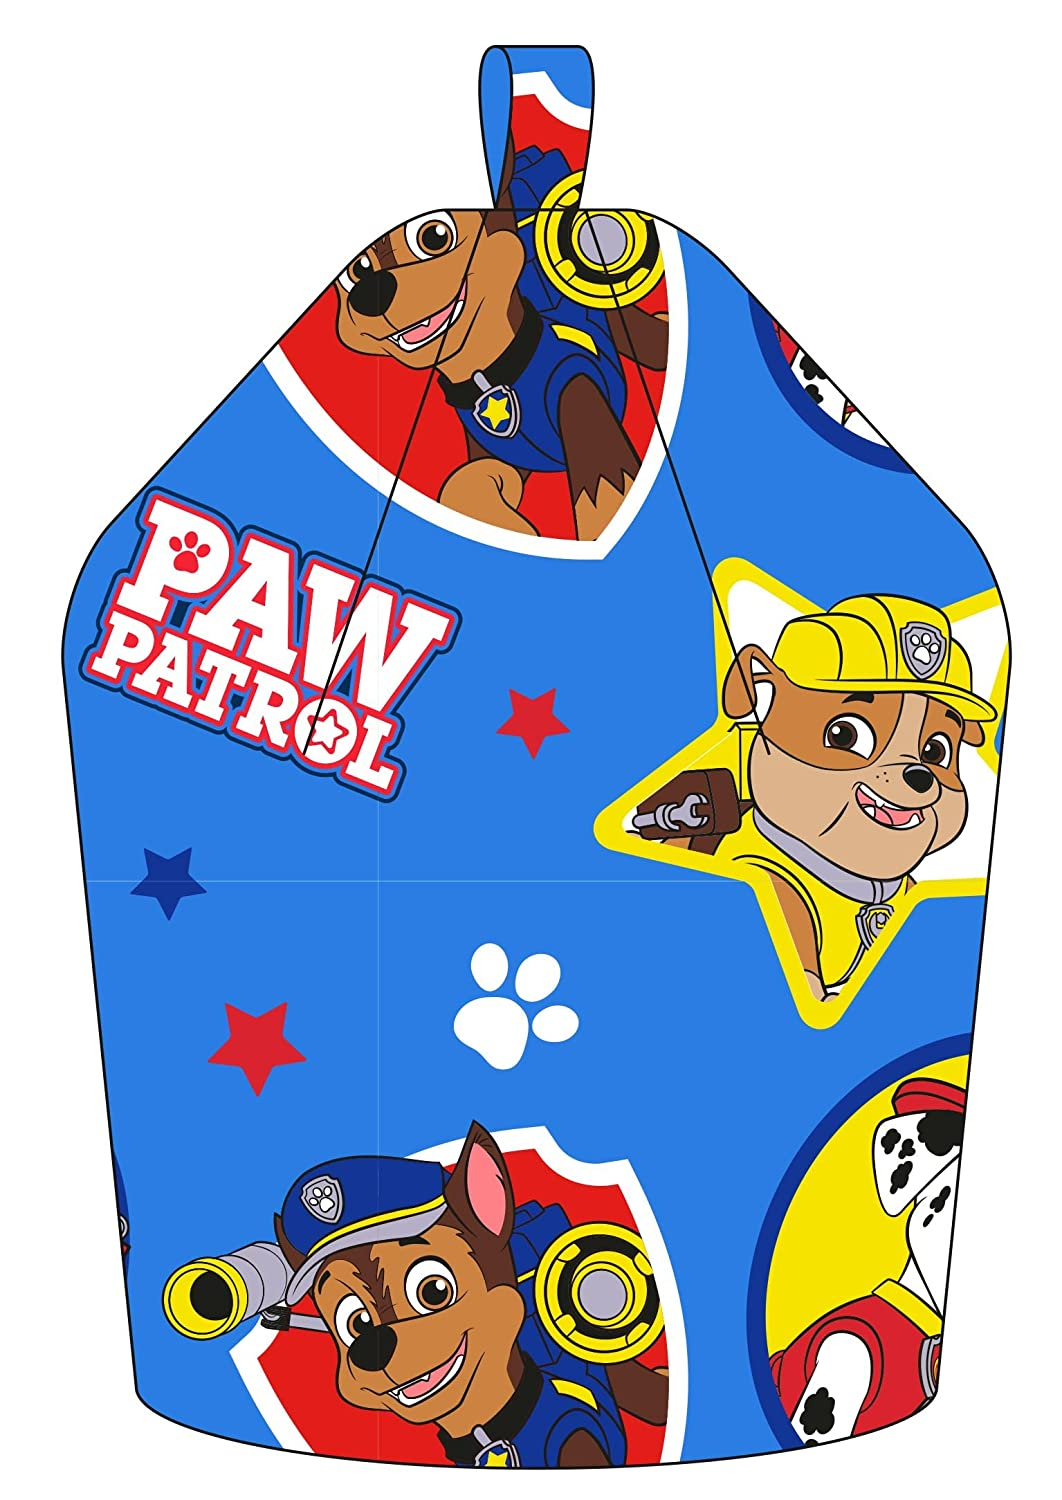 Fabric Blue 52 x 38 x 52 cm Paw Patrol Forever Chase//Marshall and Rubble Bean Bag